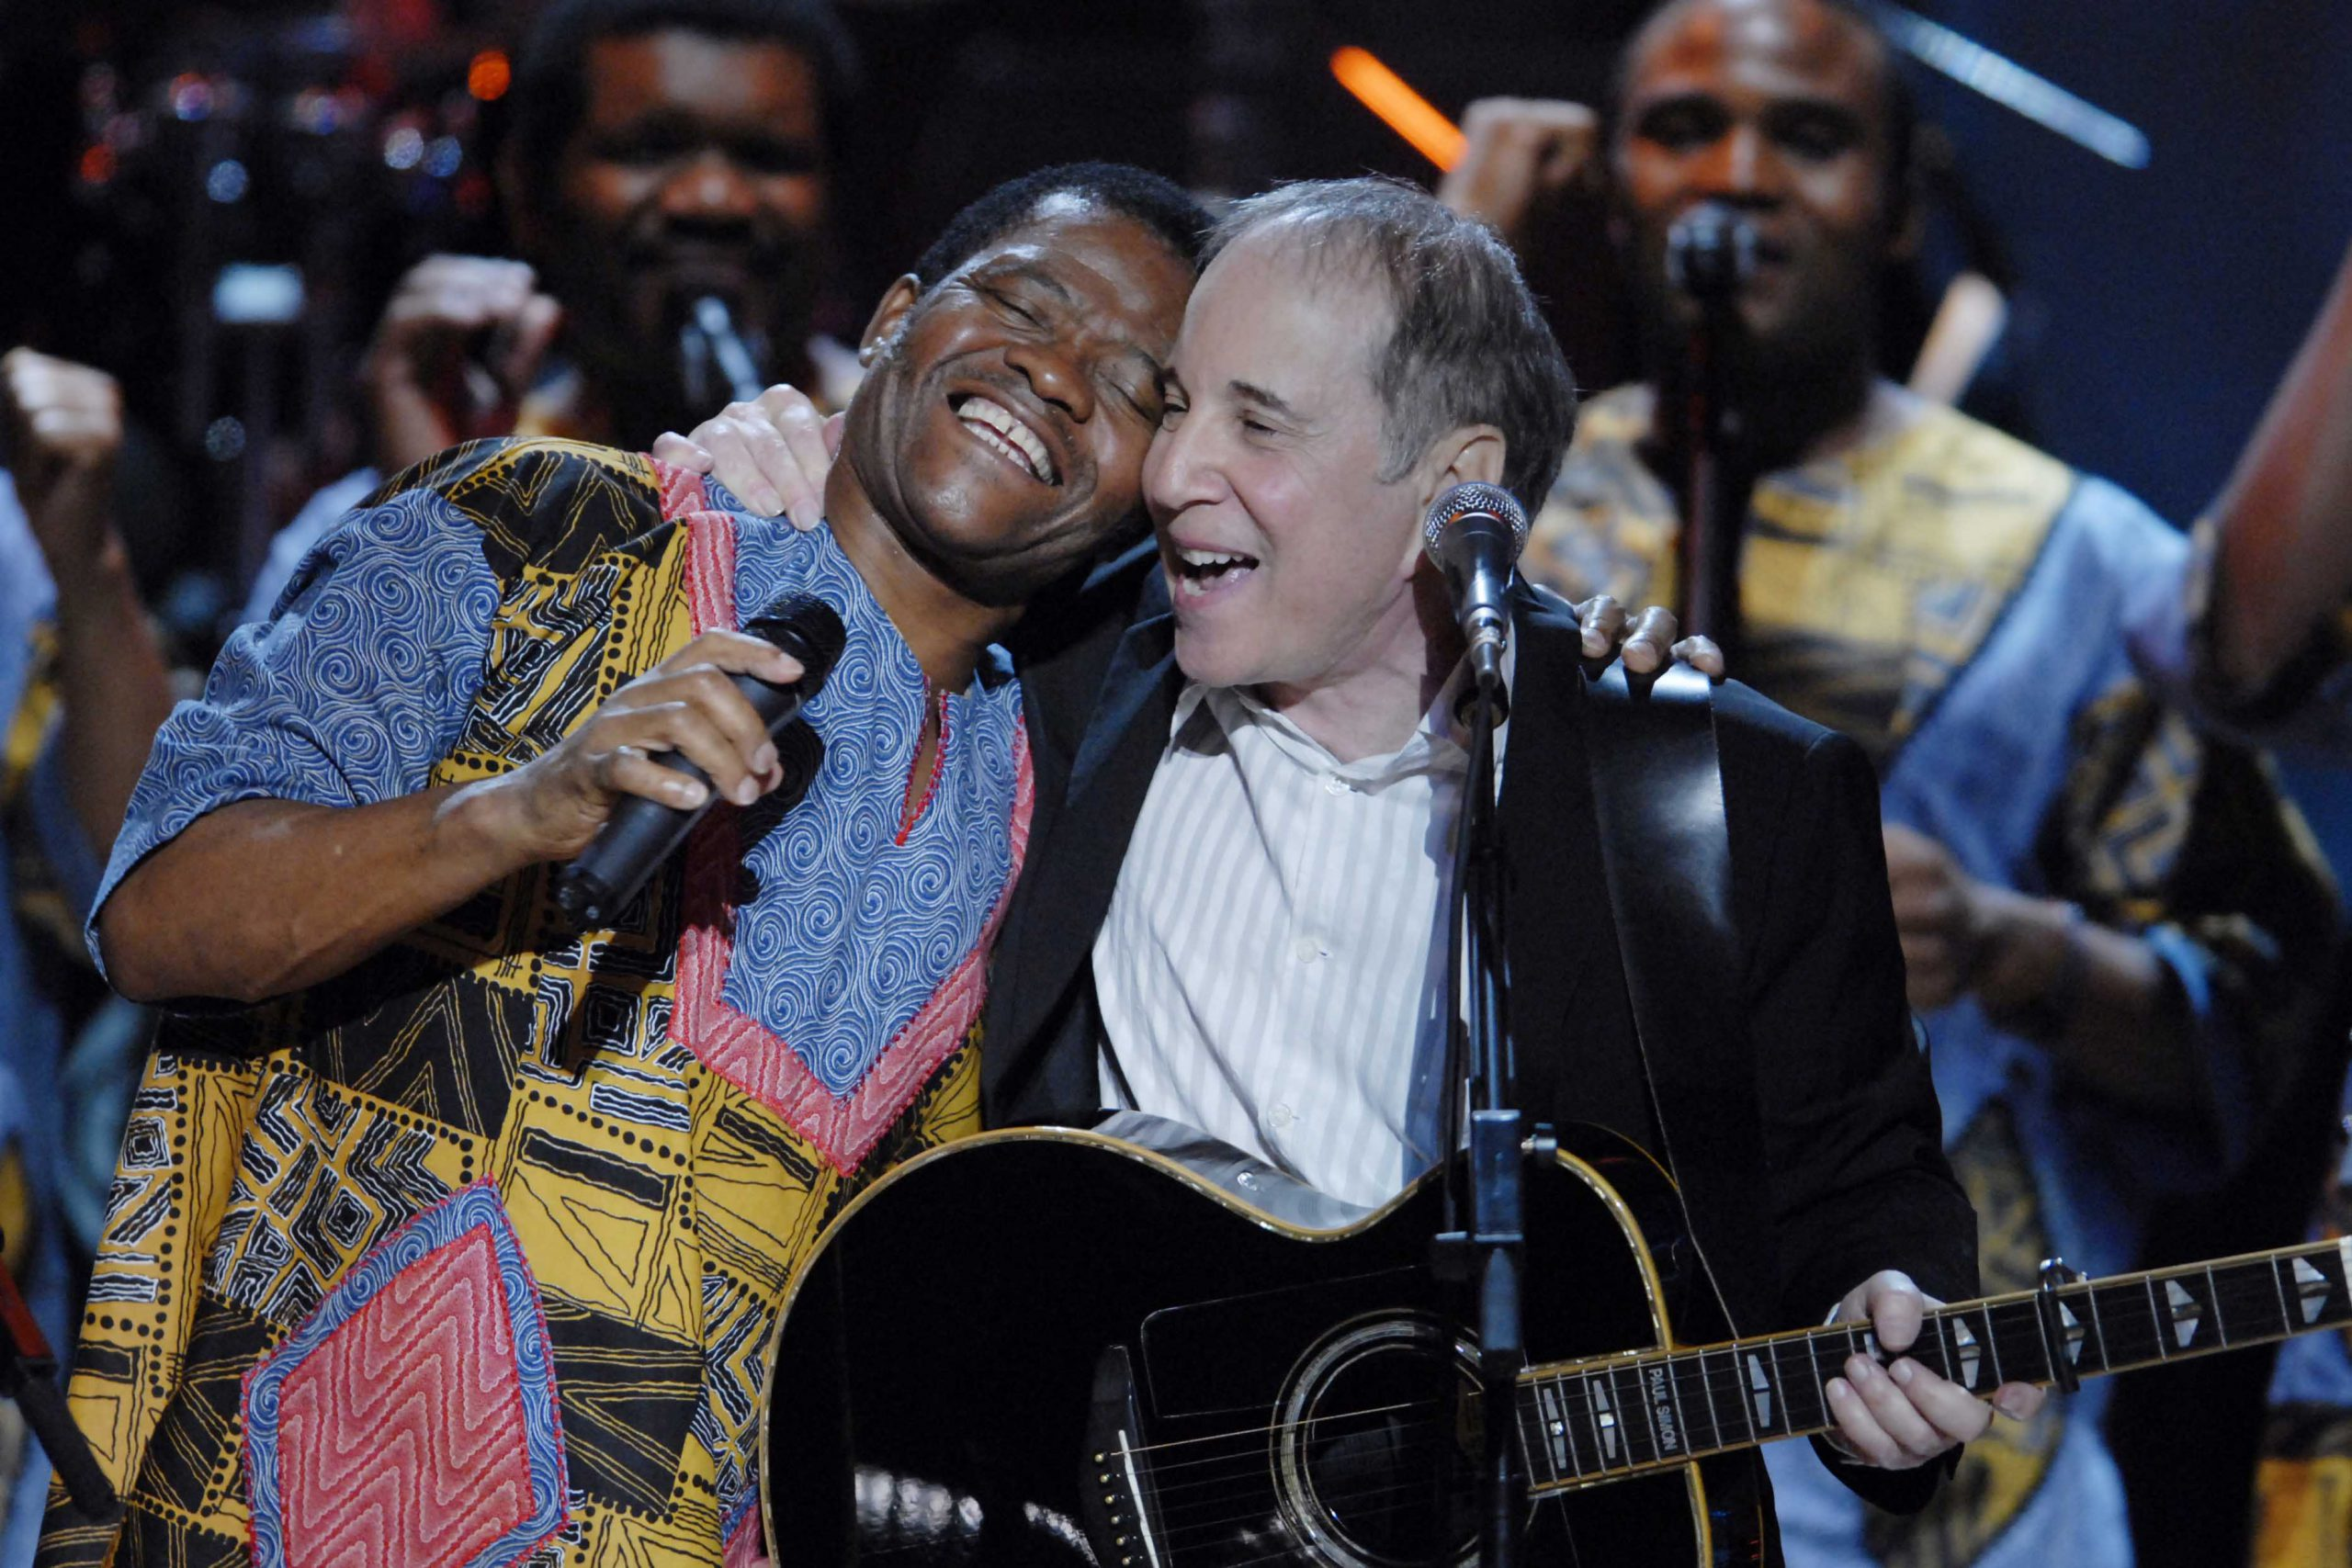 23 May 2007: Paul Simon with Ladysmith Black Mambazo at the Warner Theatre in Washington, DC. They worked with him on his 1986 album Graceland, co-writing Homeless, which has a melody based on a Zulu wedding song. (Photograph by Scott Suchman/WireImage)